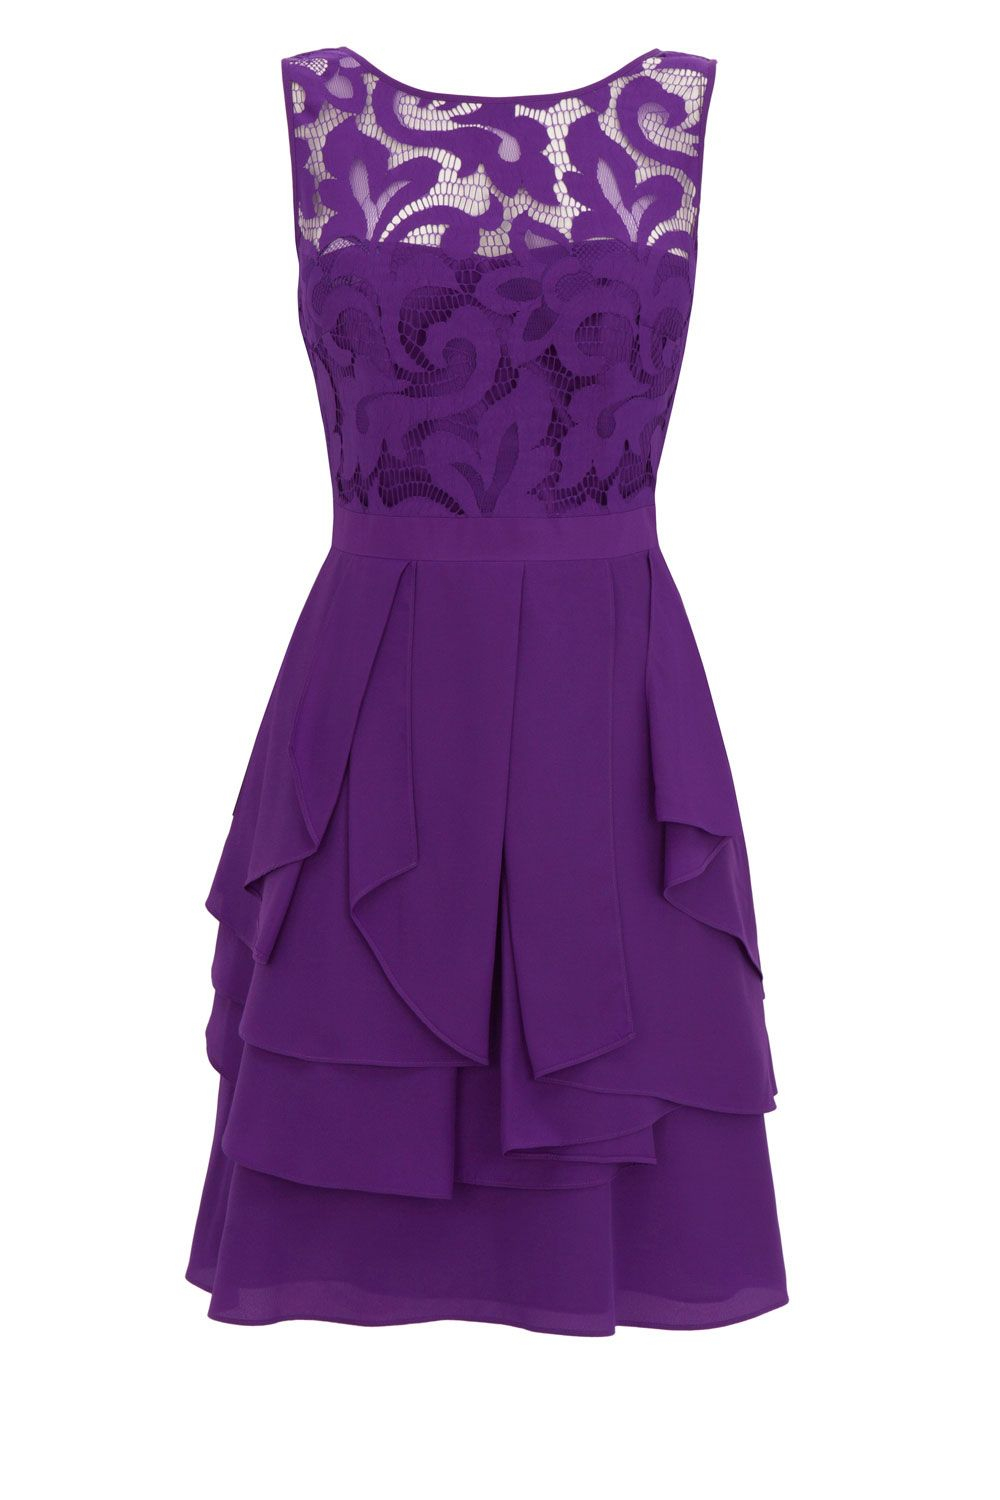 Coast Daymee Dress In Purple Lyst